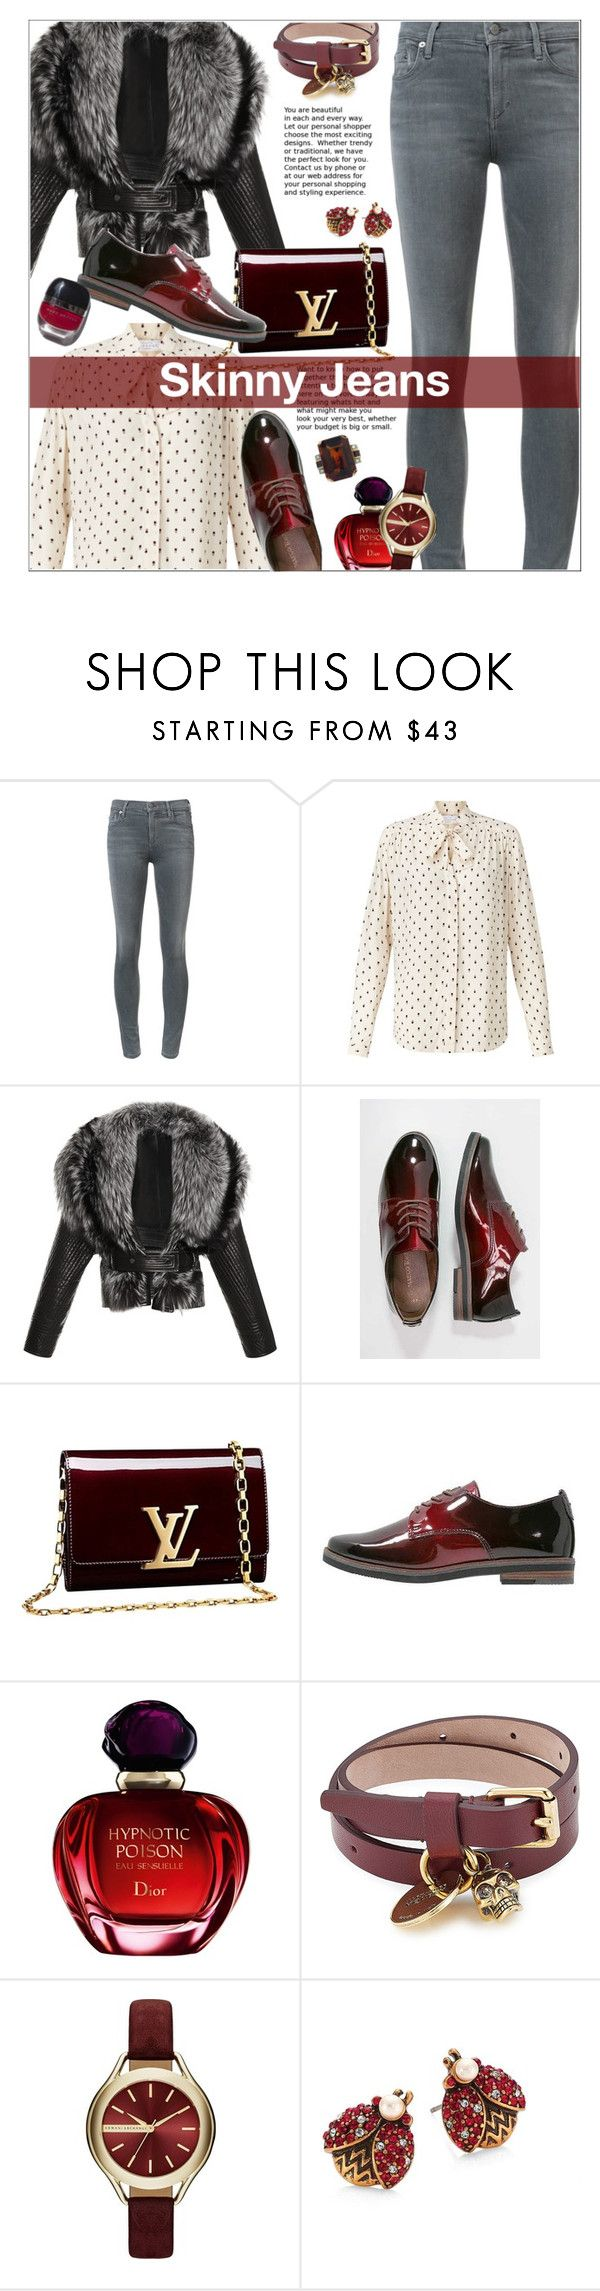 """Skinny Jeans"" by ceci-alva ❤ liked on Polyvore featuring Citizens of Humanity, John Lewis, J. Mendel, Marco Tozzi, Louis Vuitton, Christian Dior, Alexander McQueen, Armani Exchange, Marc Jacobs and Garance Doré"